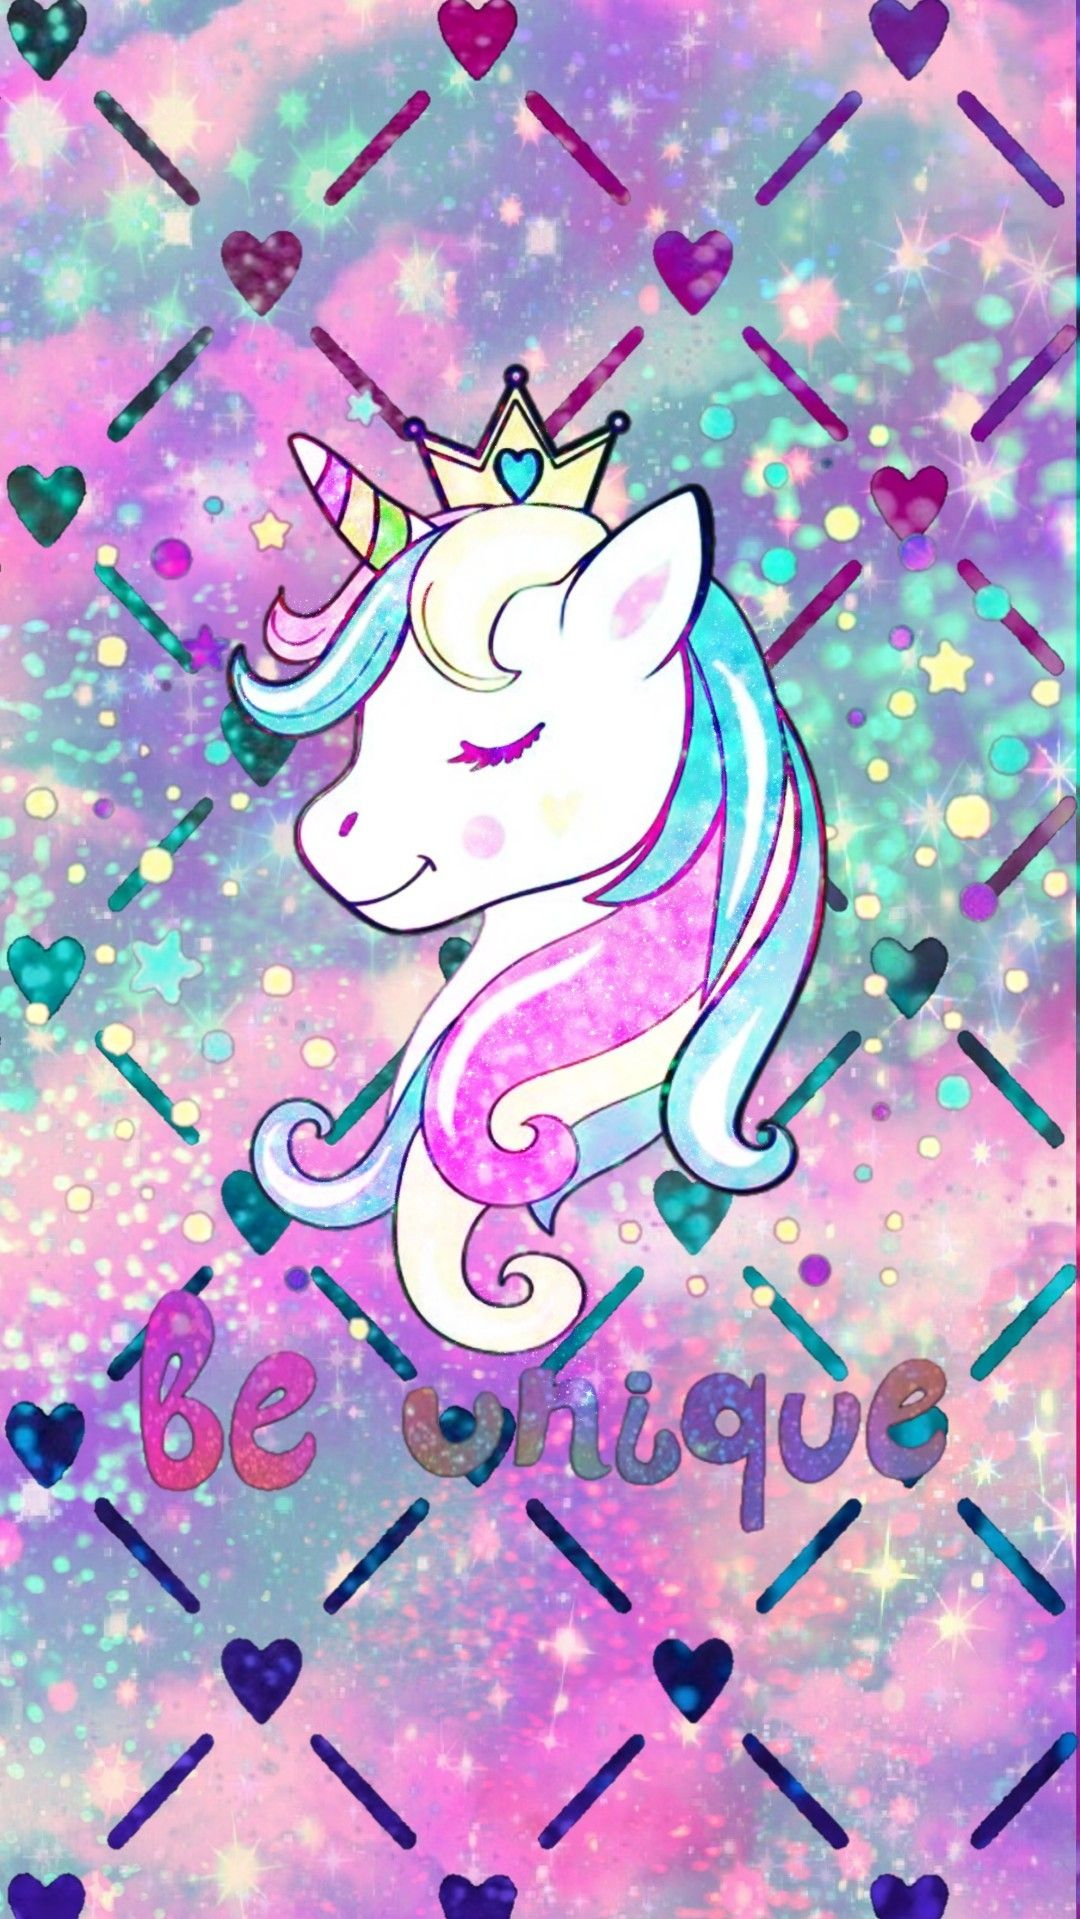 Unicorn Galaxy Made By Me Purple Sparkly Wallpapers Backgrounds Sparkles Glittery Galax Unicorn Wallpaper Glittery Wallpaper Cute Wallpaper Backgrounds